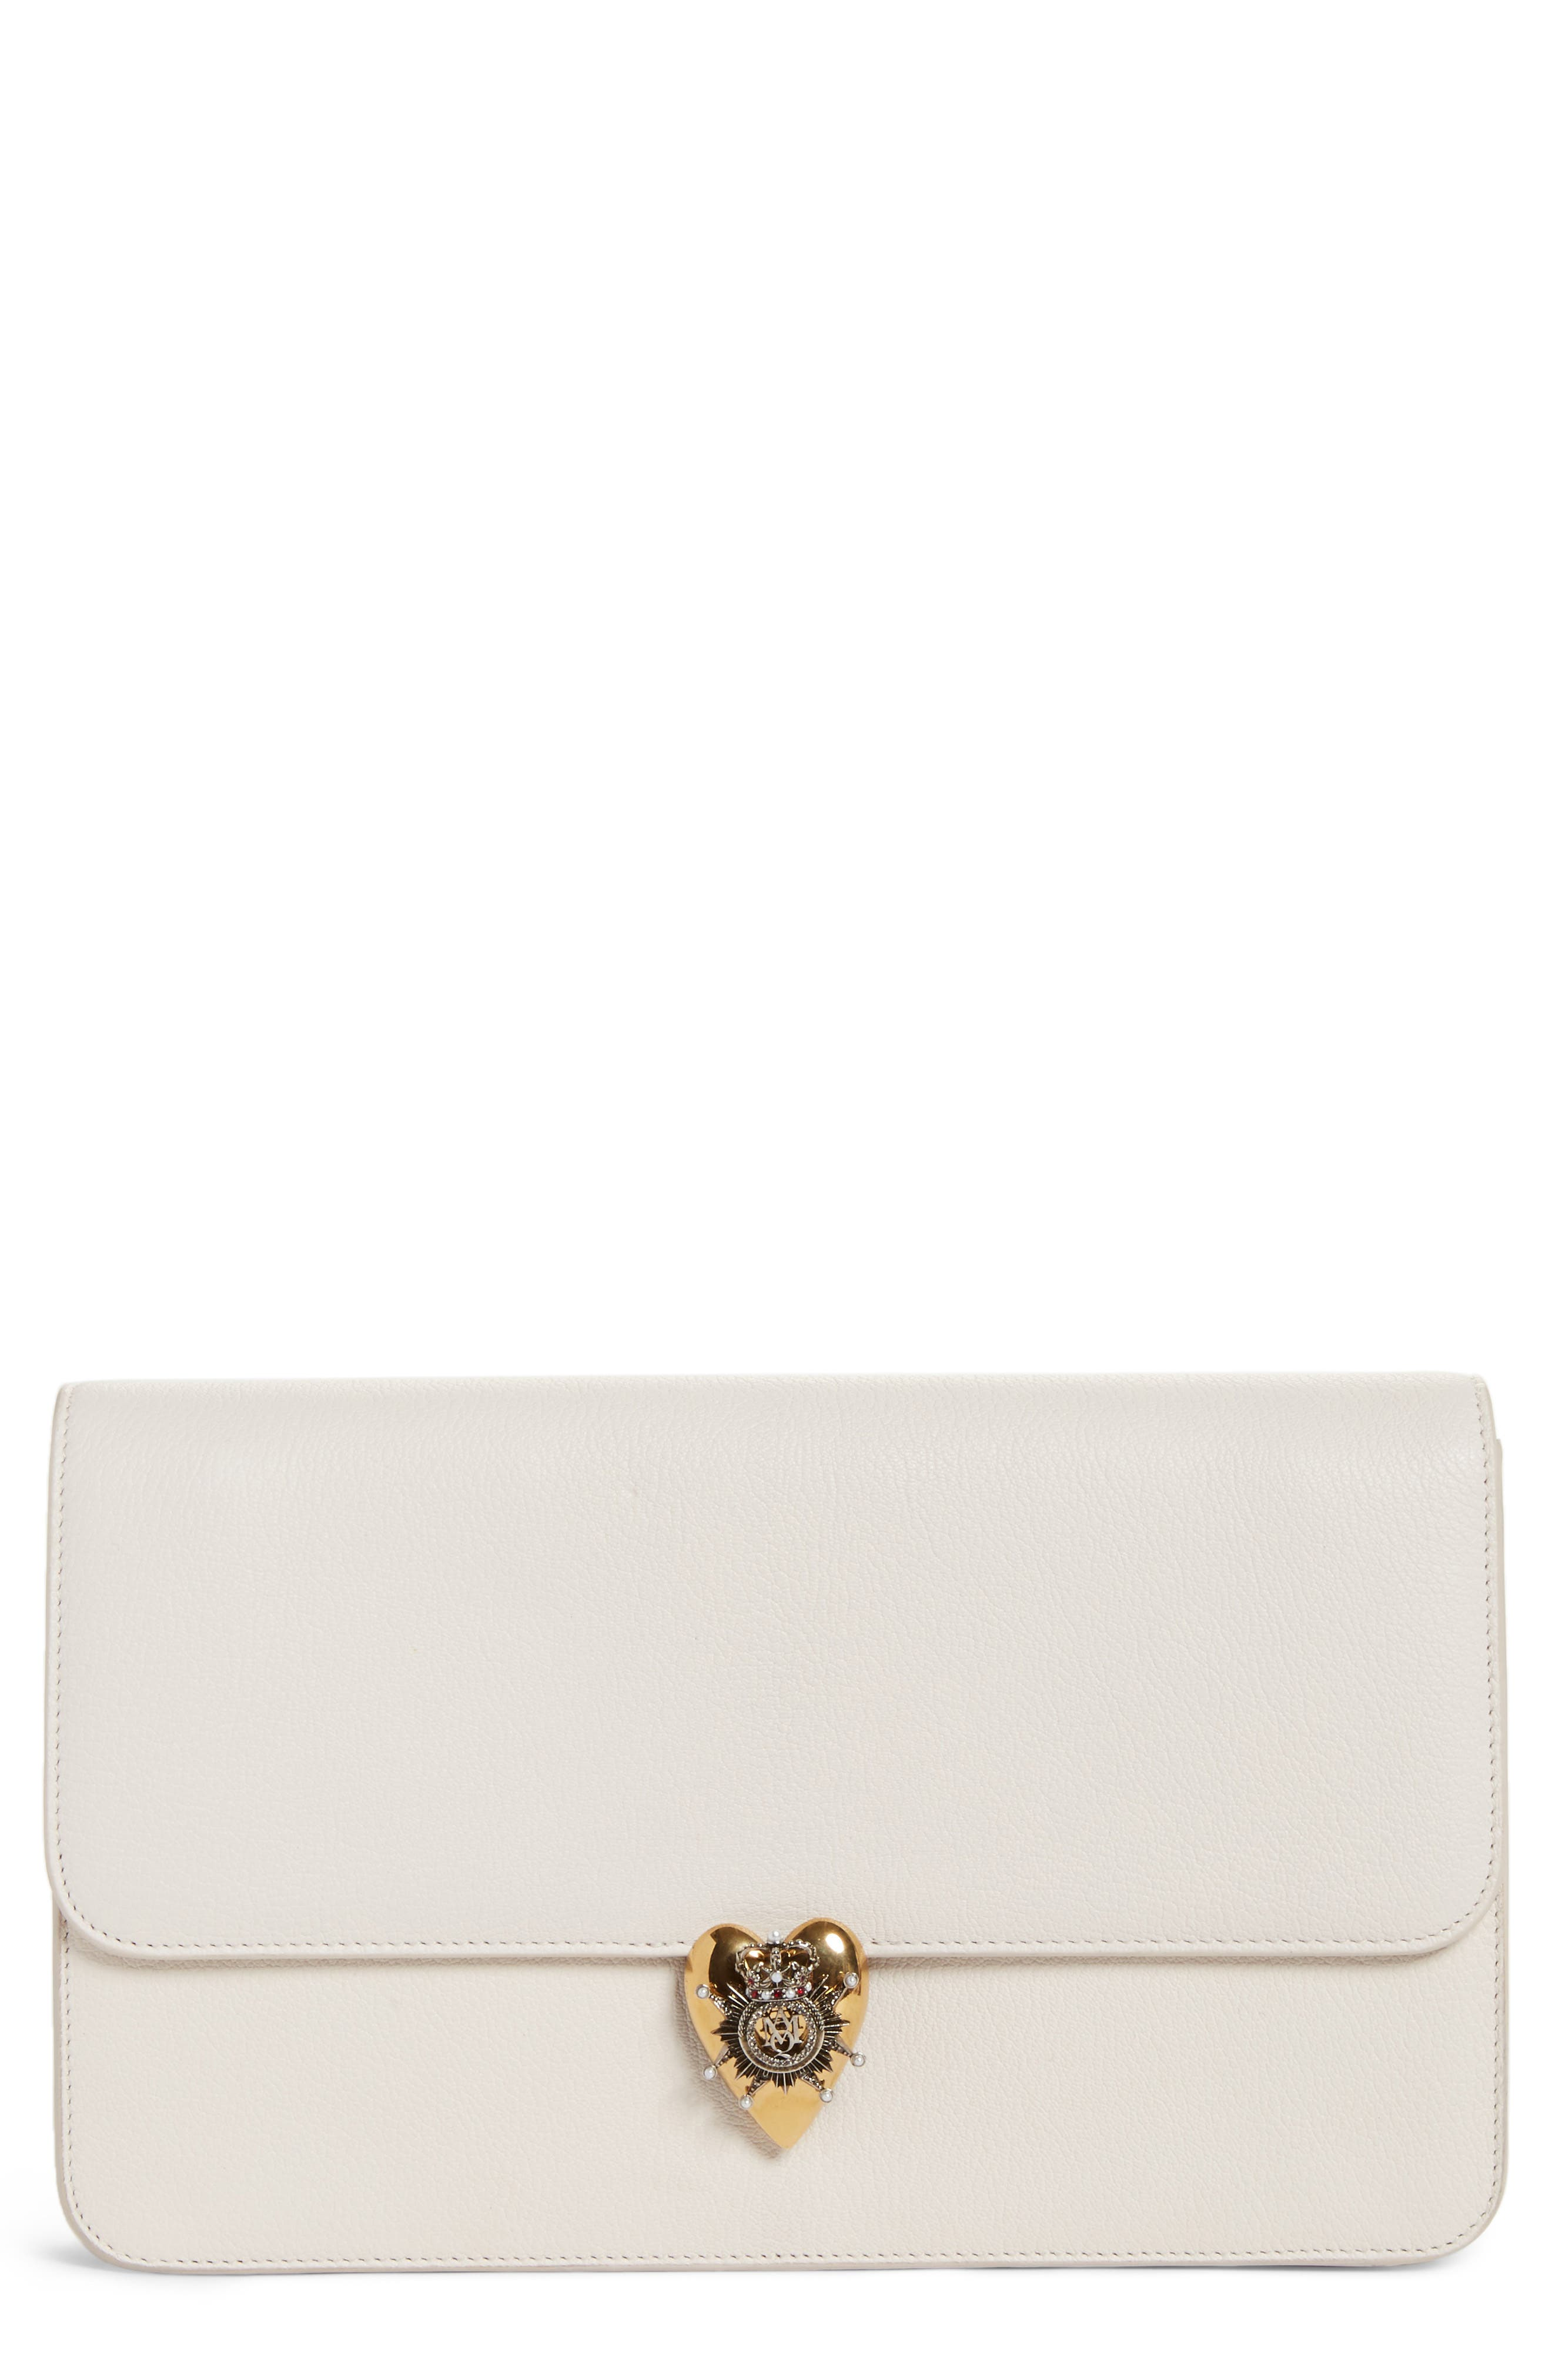 Heart Leather Clutch,                         Main,                         color, Off White